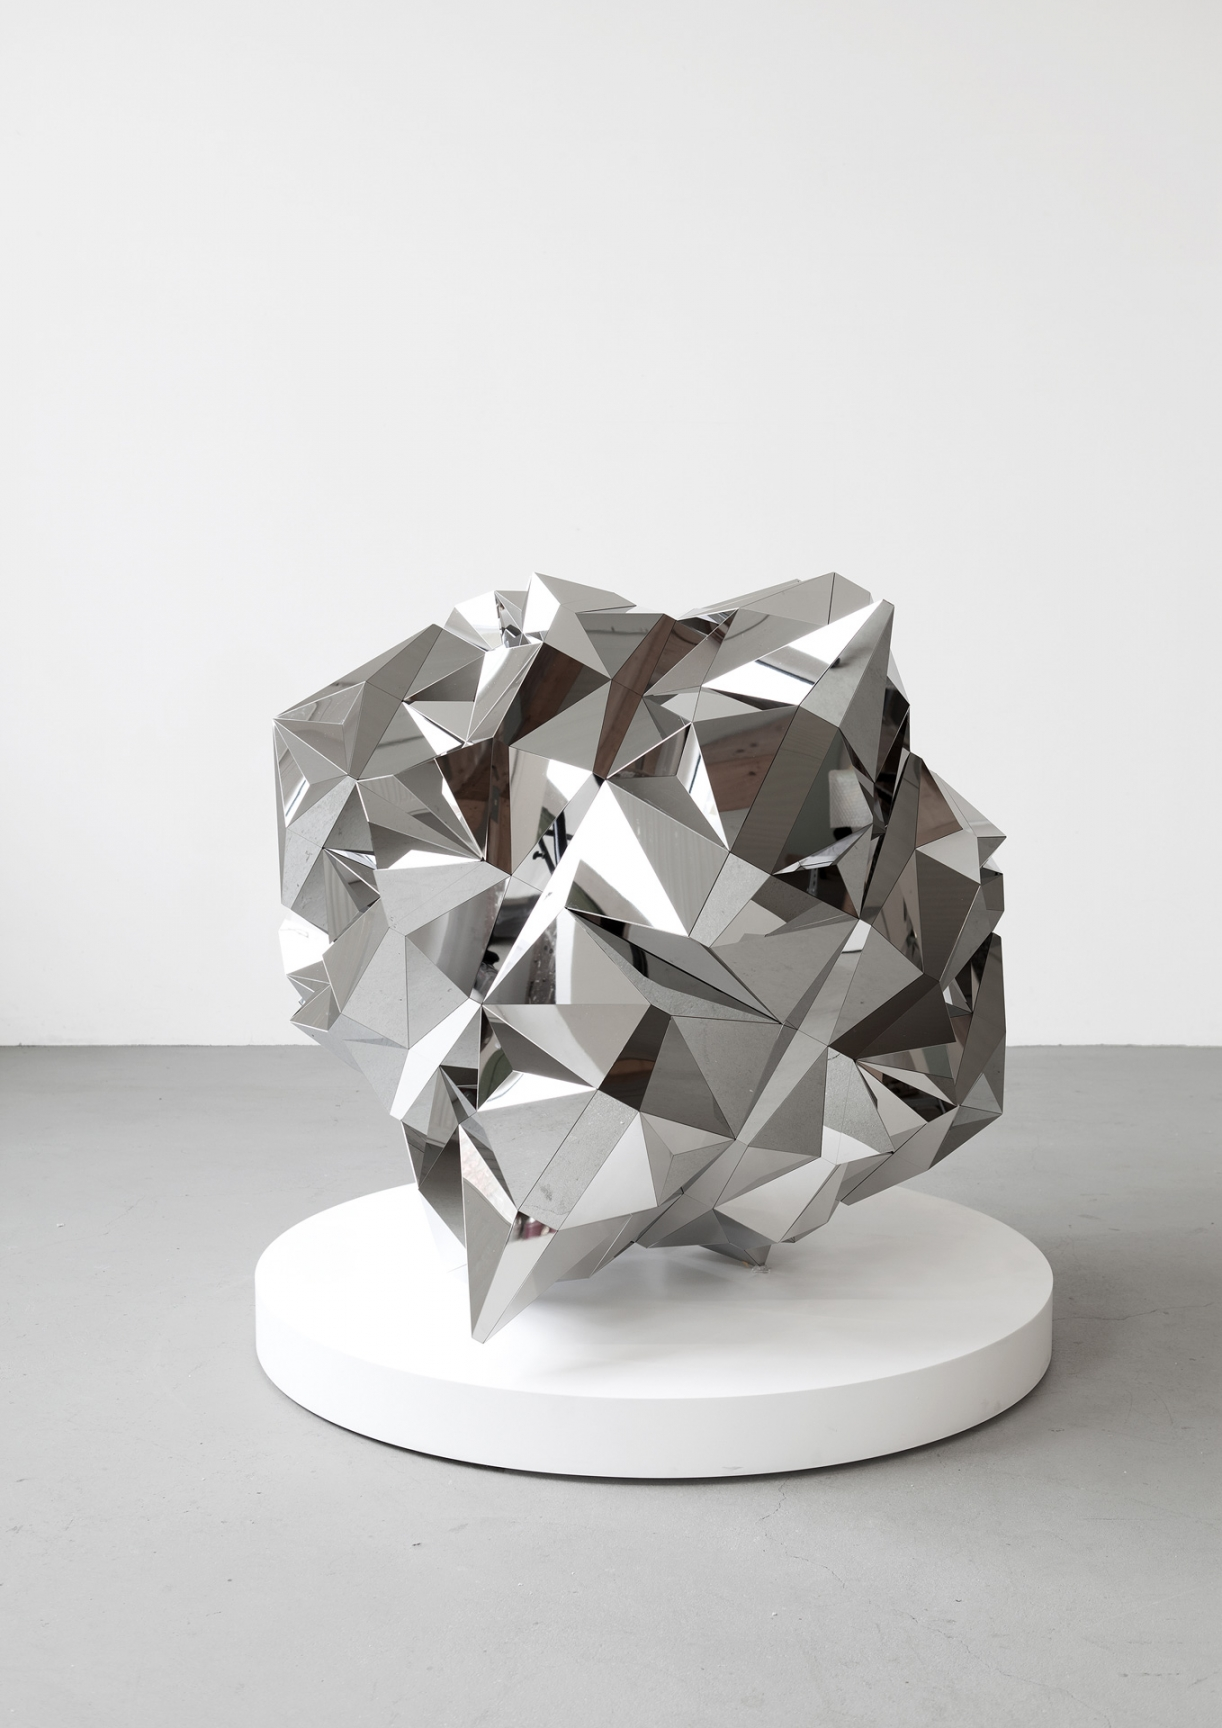 Timo Nasseri, Parsec #6, 2017, Polished stainless steel, 118 x 118 x 107 cm, Edition 3 + 1 AP